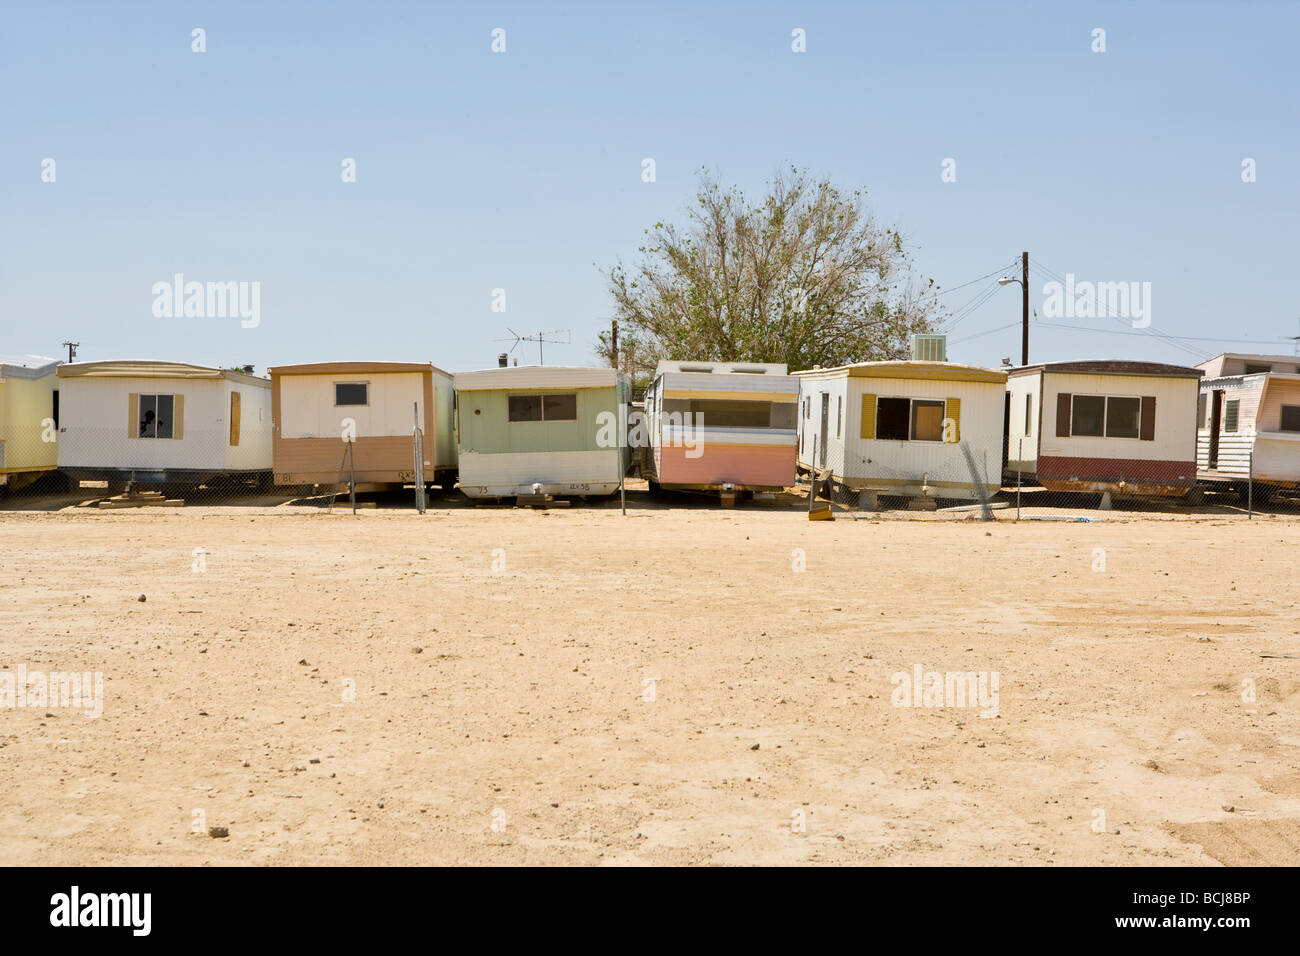 Row Of Abandoned Mobile Homes With Pastel Colors In Dirt Lot Sky Background